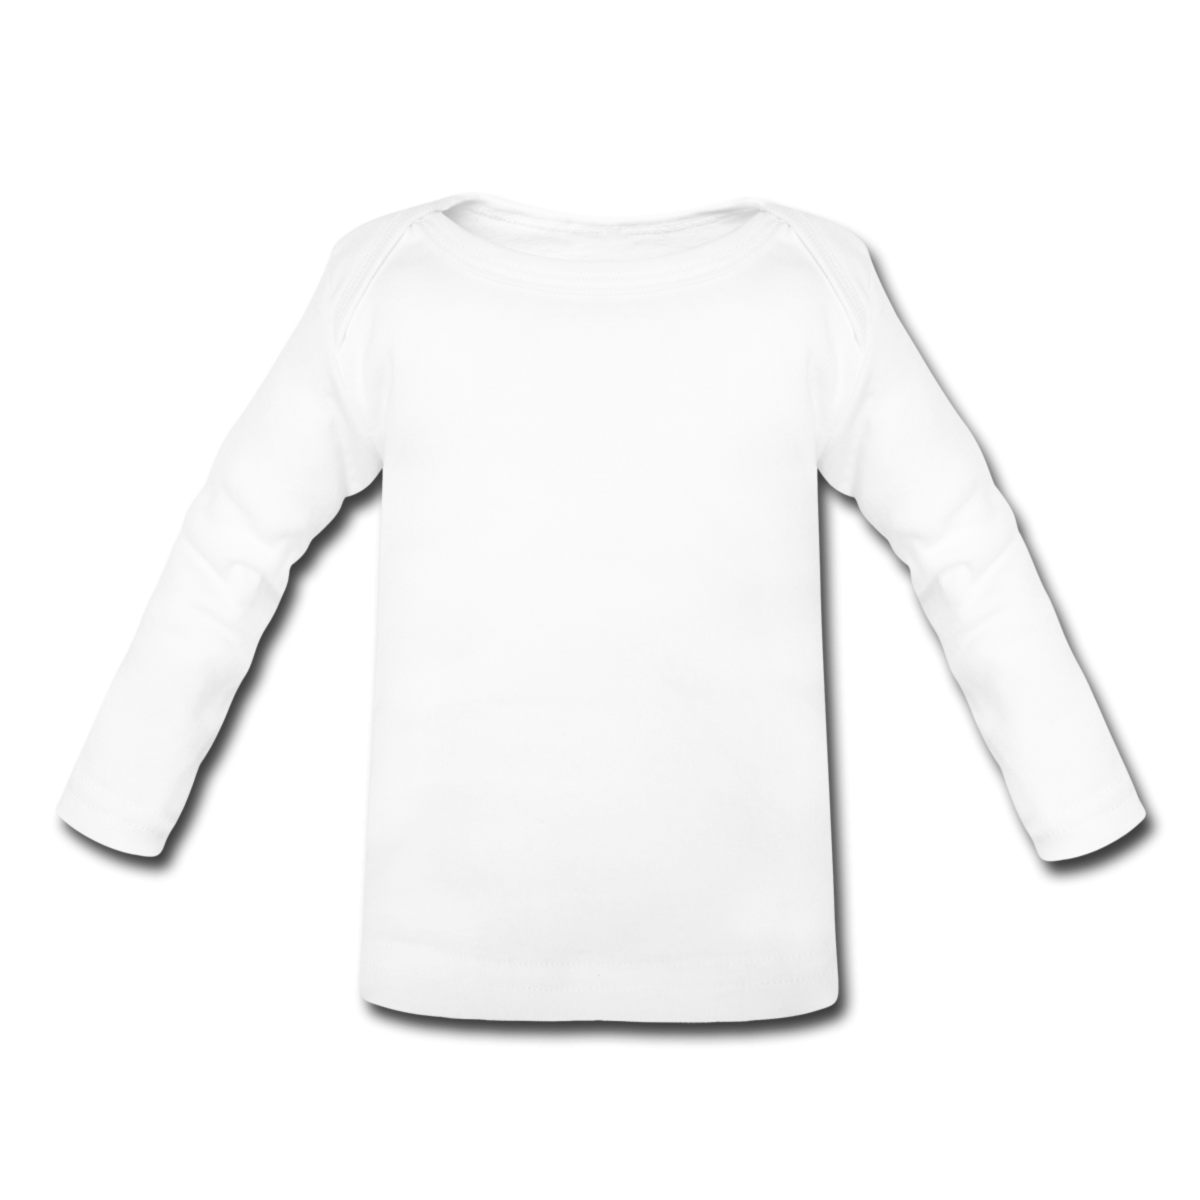 Blank long sleeve shirt clipart graphic black and white stock Free Longsleeve Shirt Cliparts, Download Free Clip Art, Free Clip ... graphic black and white stock